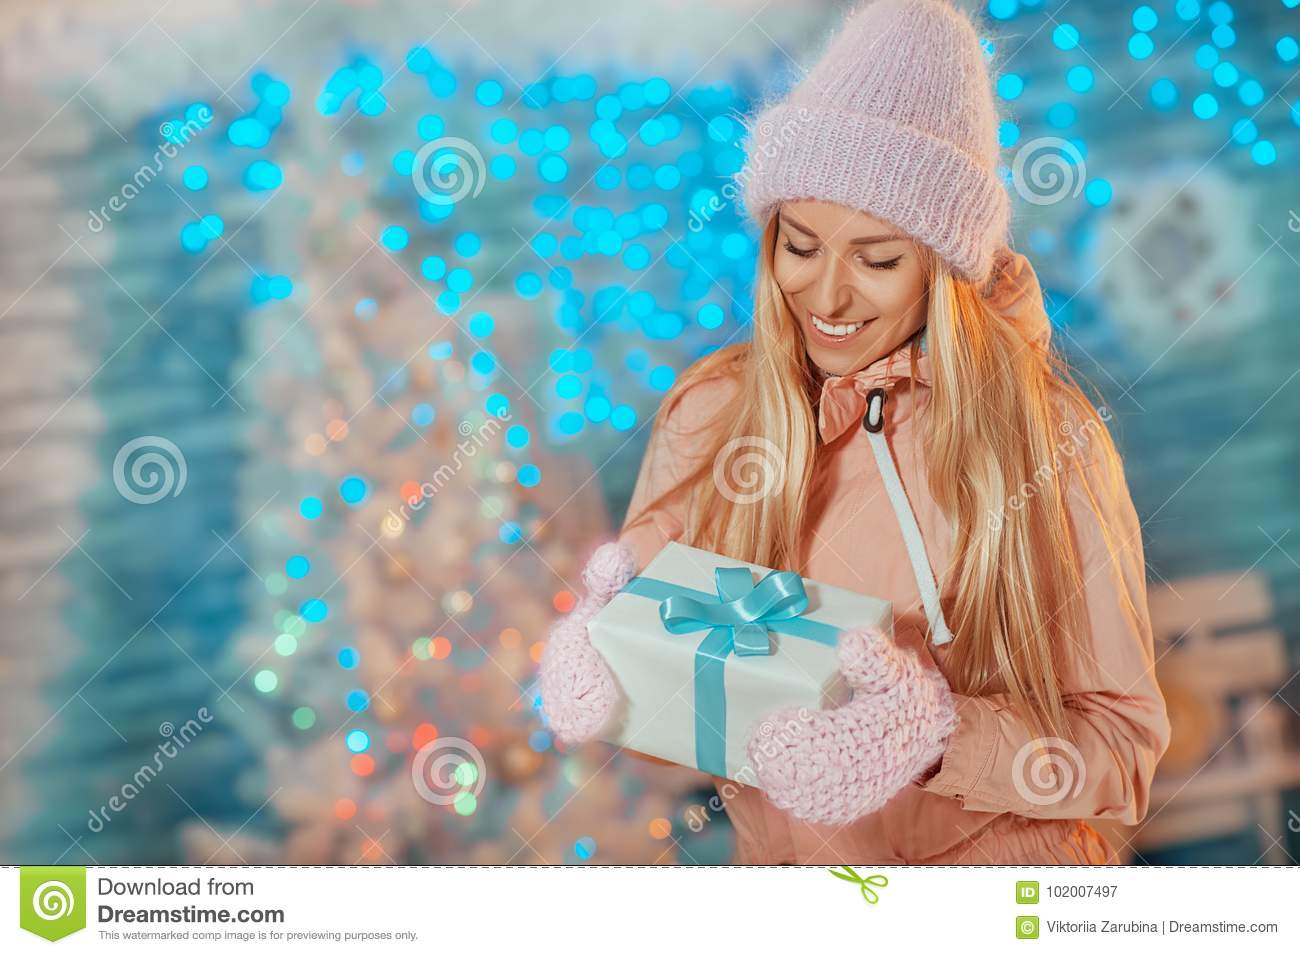 Merry Christmas and Happy New Year! Portrait of happy cheerful beautiful woman in knitted hat mittens holding holiday present box